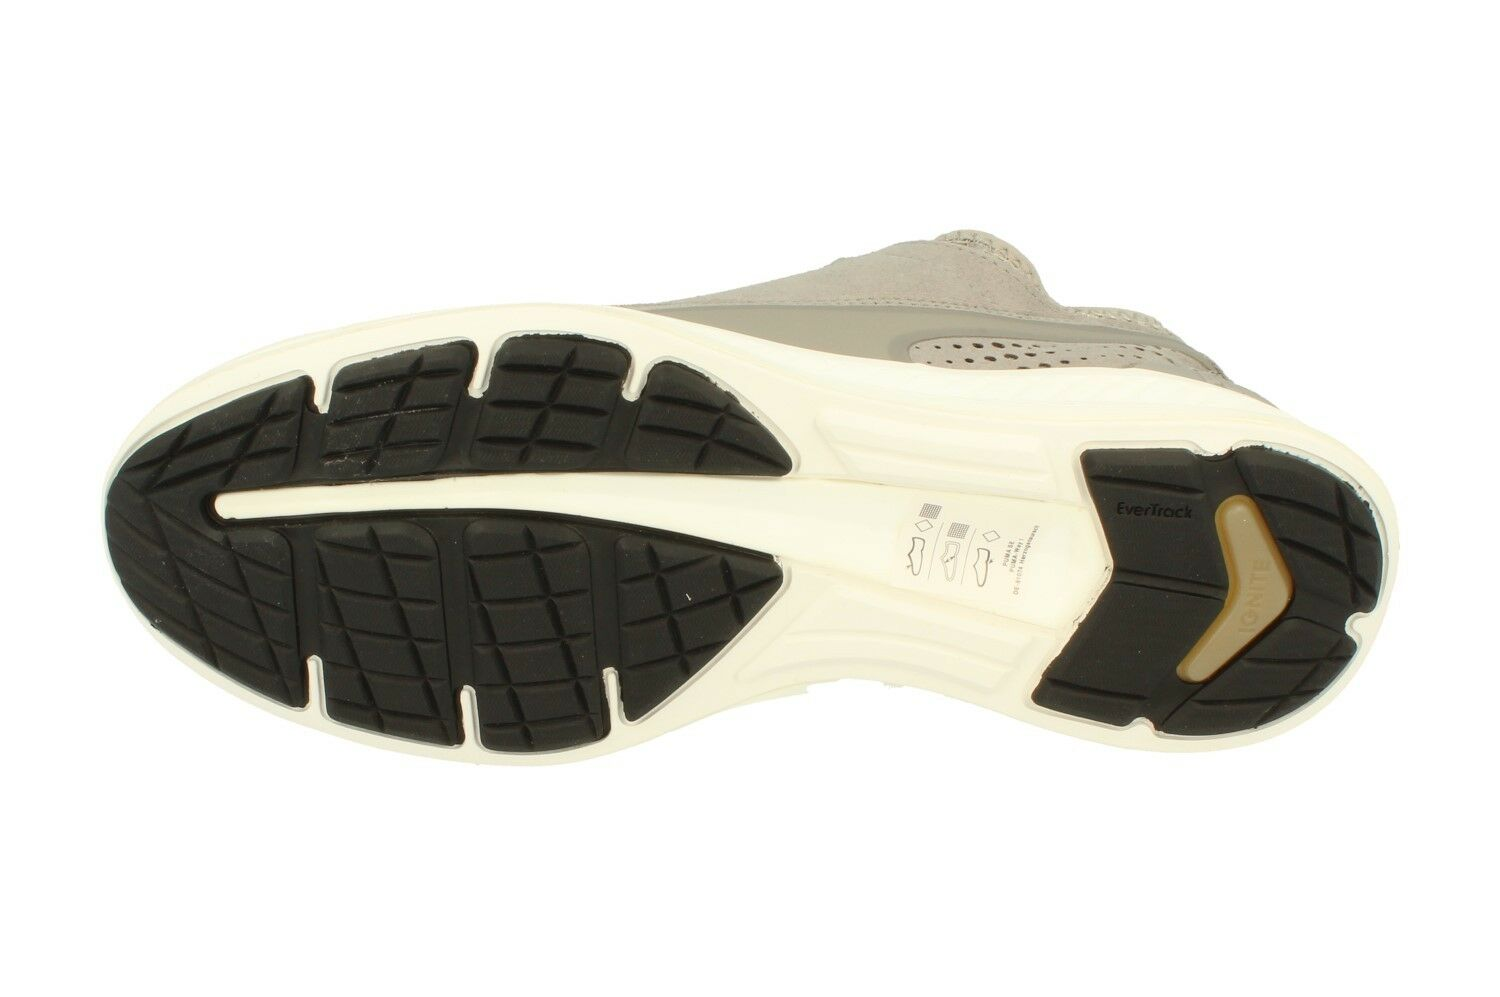 Puma Ignite Sock Mens Running Trainers 360570 360570 360570 Sneakers Shoes 02 8c0f7c